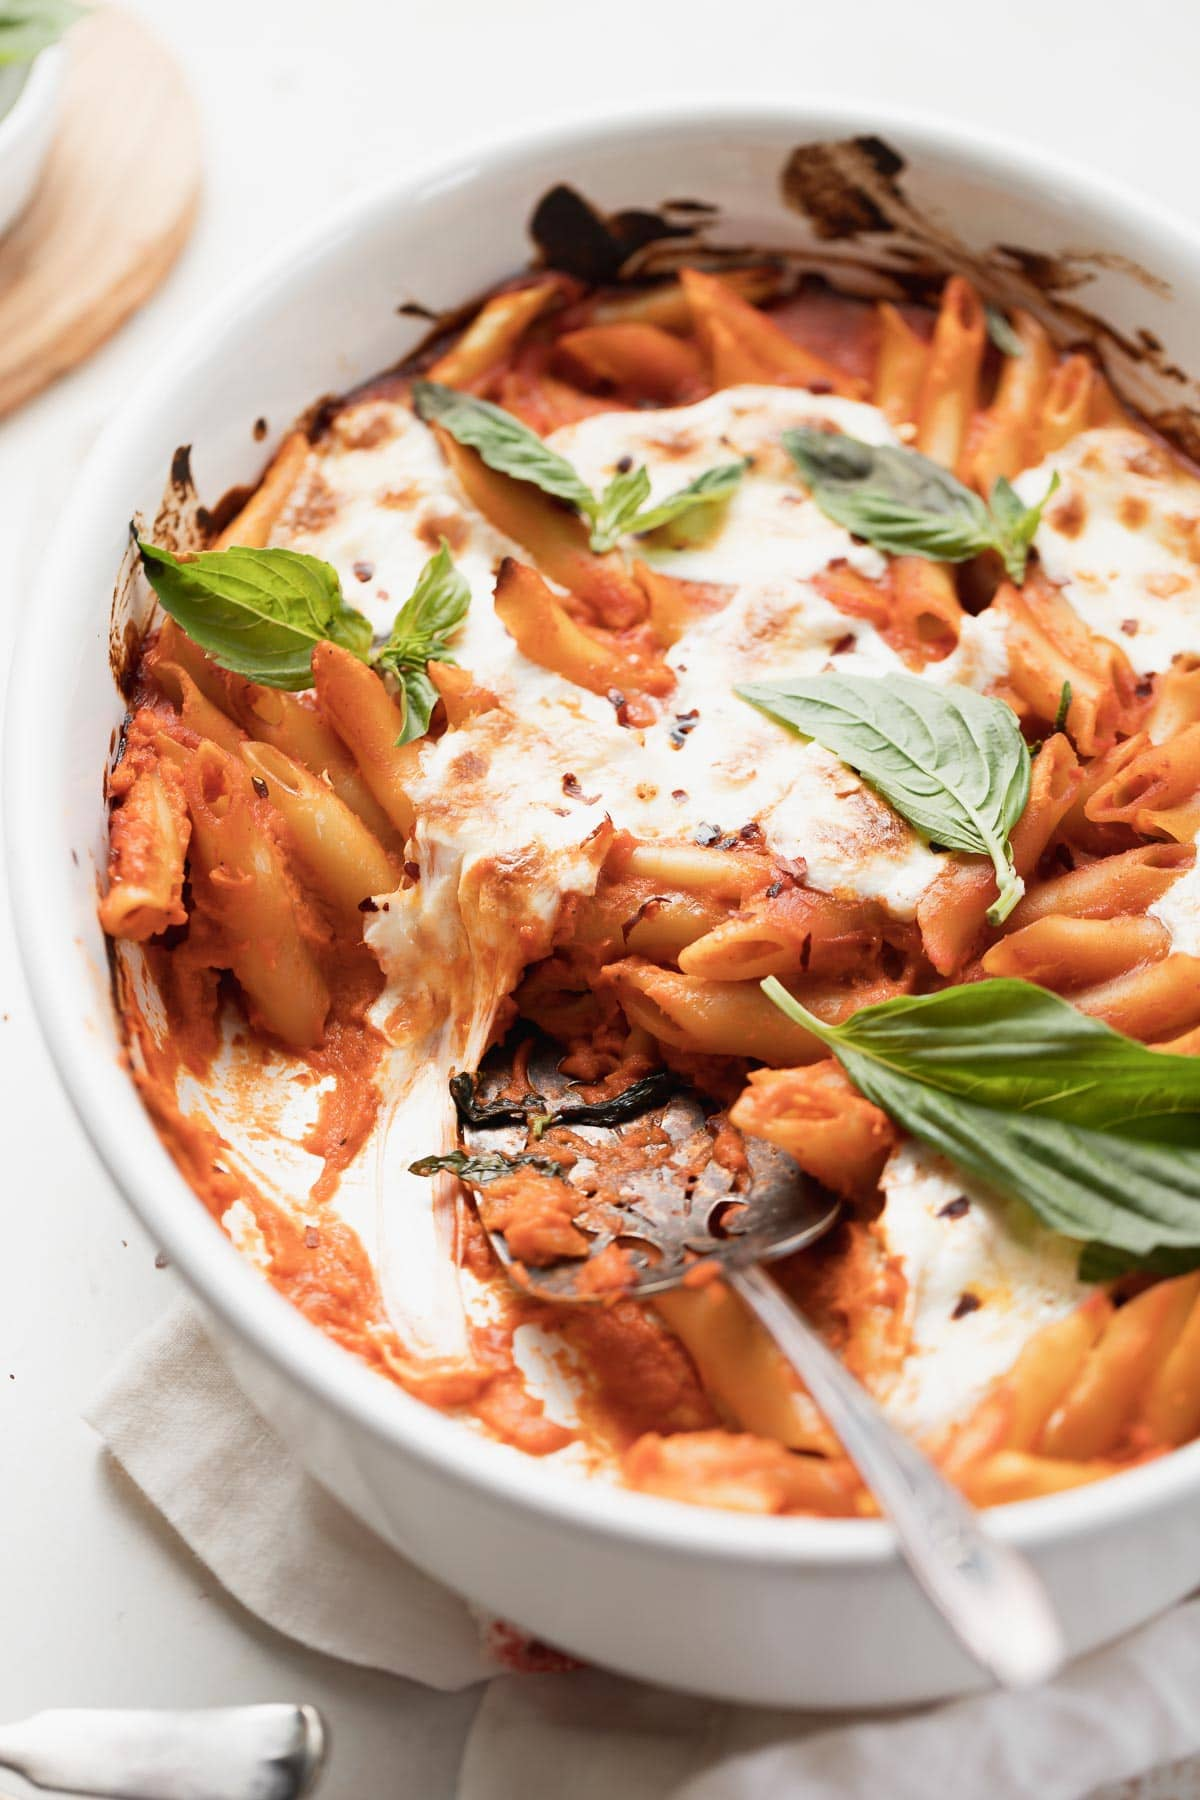 the baked penne with spicy vodka sauce in a pan.